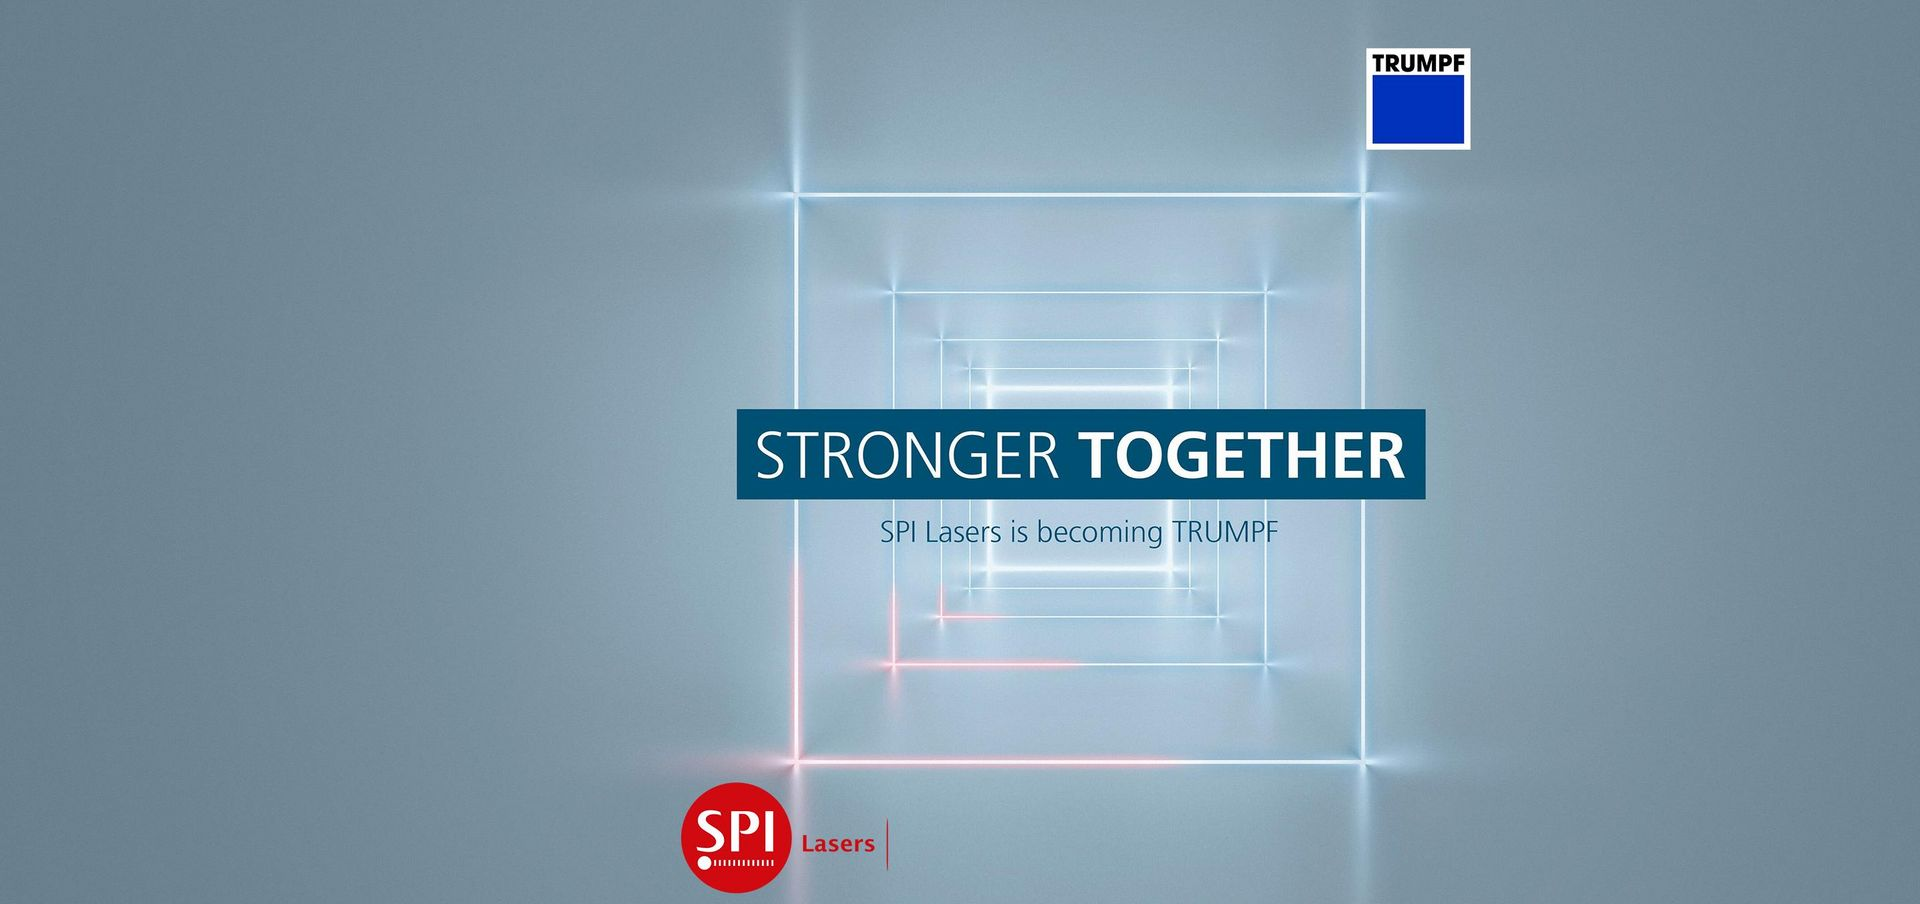 trumpf-sTRONGER-TOGETHER